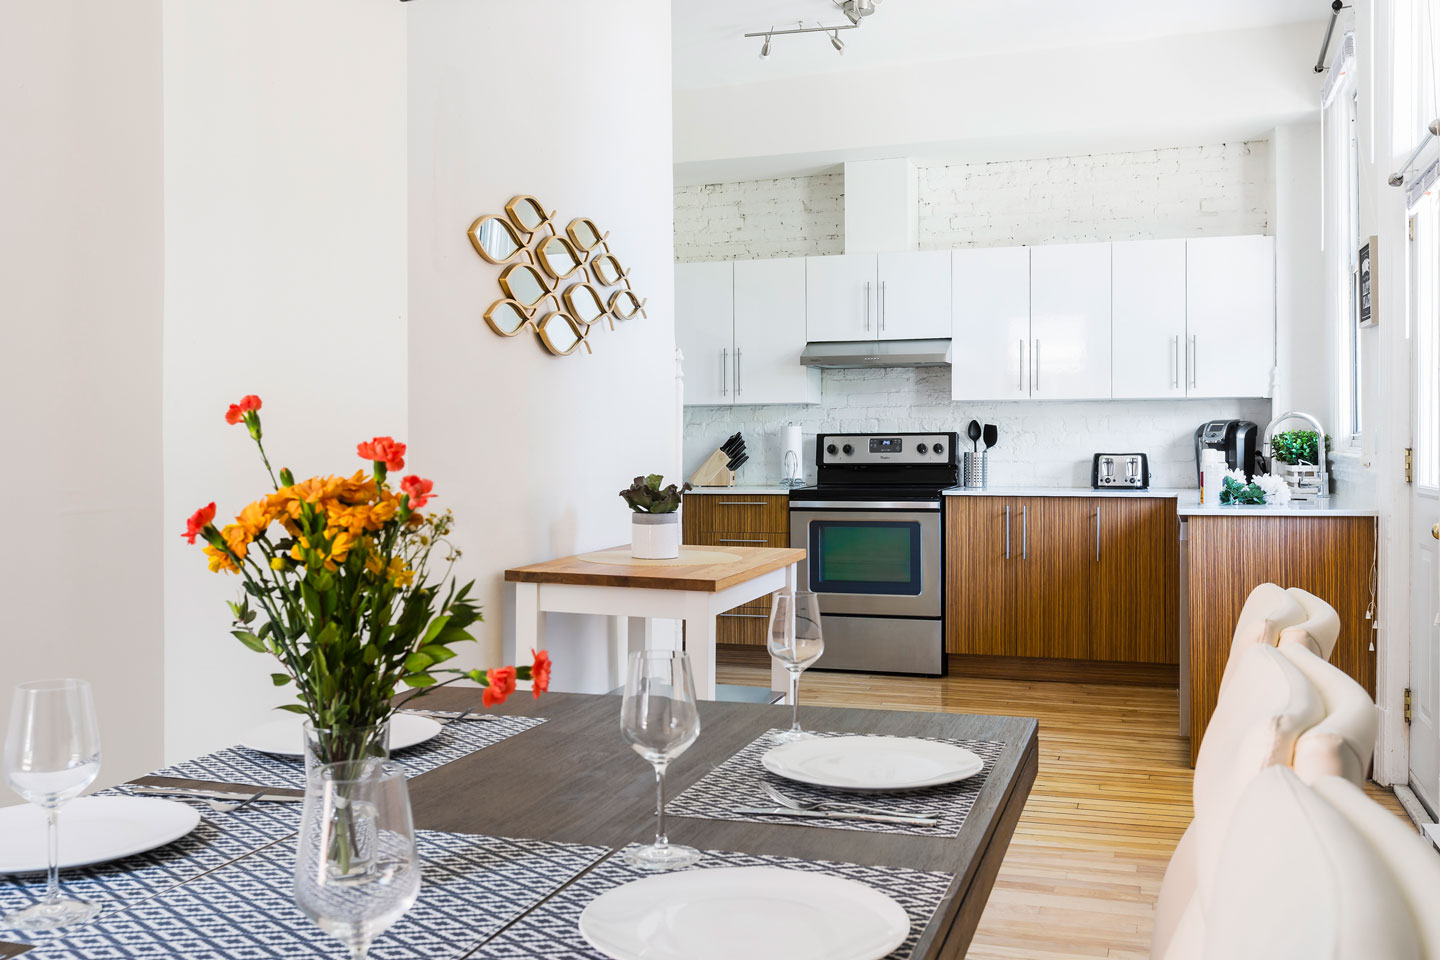 Chic Laurier #2: modern kitchen with dishwasher and 8 seats table